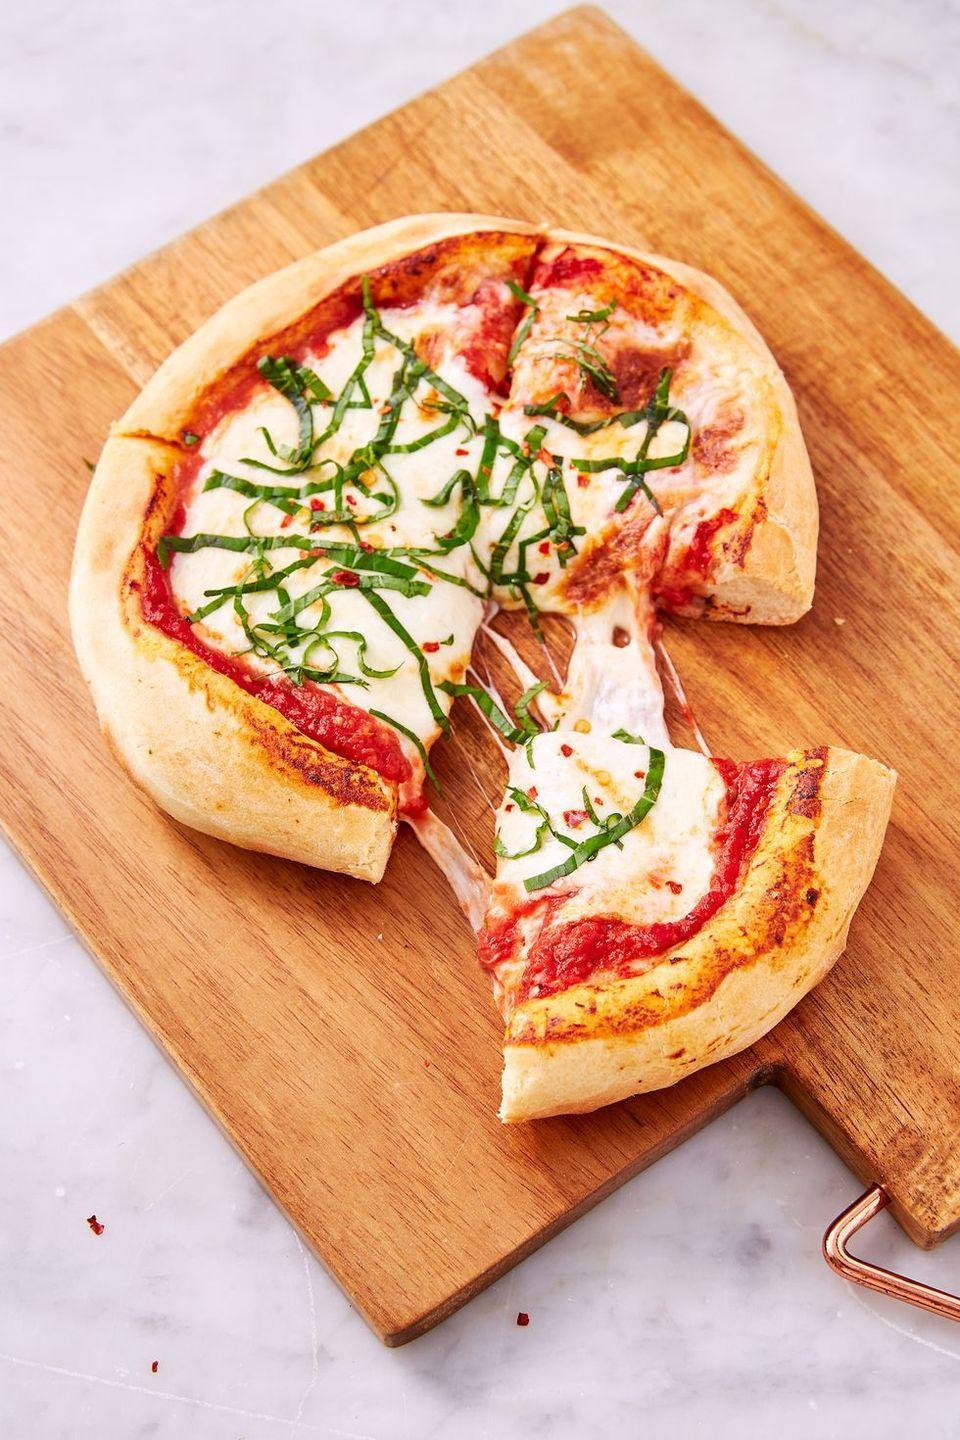 """<p>Making great <a href=""""https://www.delish.com/uk/cooking/recipes/a30686833/homemade-pizza-recipe/"""" rel=""""nofollow noopener"""" target=""""_blank"""" data-ylk=""""slk:homemade pizza"""" class=""""link rapid-noclick-resp"""">homemade pizza</a> can be hard, or so we thought. Turns out, we just hadn't tried making it in an air fryer yet! This super simple recipe yields some of the best pizza to ever come out of our kitchen. The air fryer excels in cooking crust—ours was airy in the centre and crunchy on the outside, just like in a true pizza oven! </p><p>Get the <a href=""""https://www.delish.com/uk/cooking/recipes/a34665610/air-fryer-pizza-recipe/"""" rel=""""nofollow noopener"""" target=""""_blank"""" data-ylk=""""slk:Air Fryer Pizza"""" class=""""link rapid-noclick-resp"""">Air Fryer Pizza</a> recipe.</p>"""